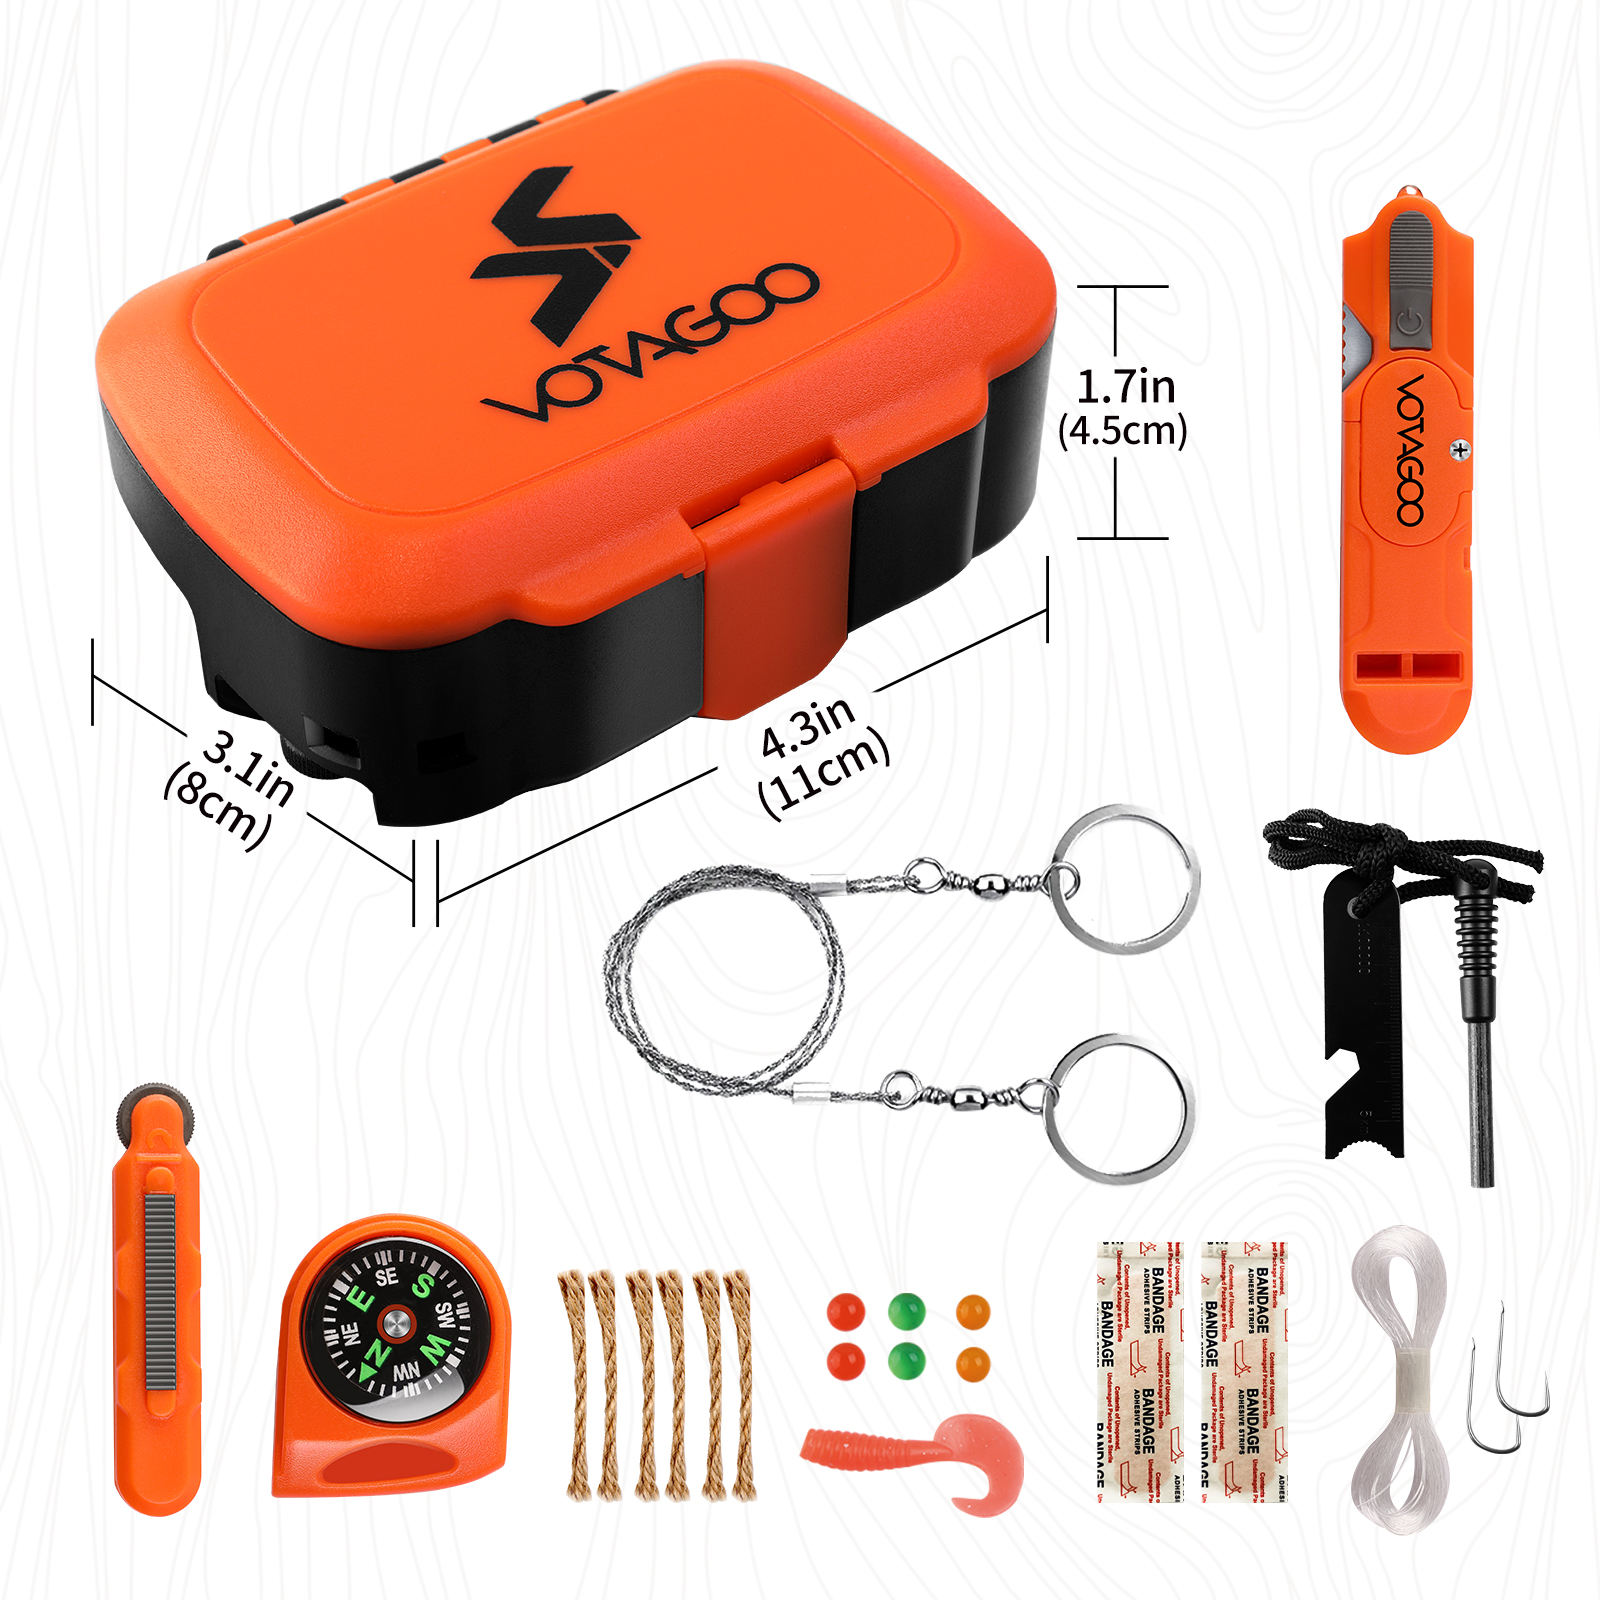 Emergency Survival Kit 13 in 1 Outdoor Professional Gear Tactical Equipment EDC Tool for Camping, Hiking, Climbing